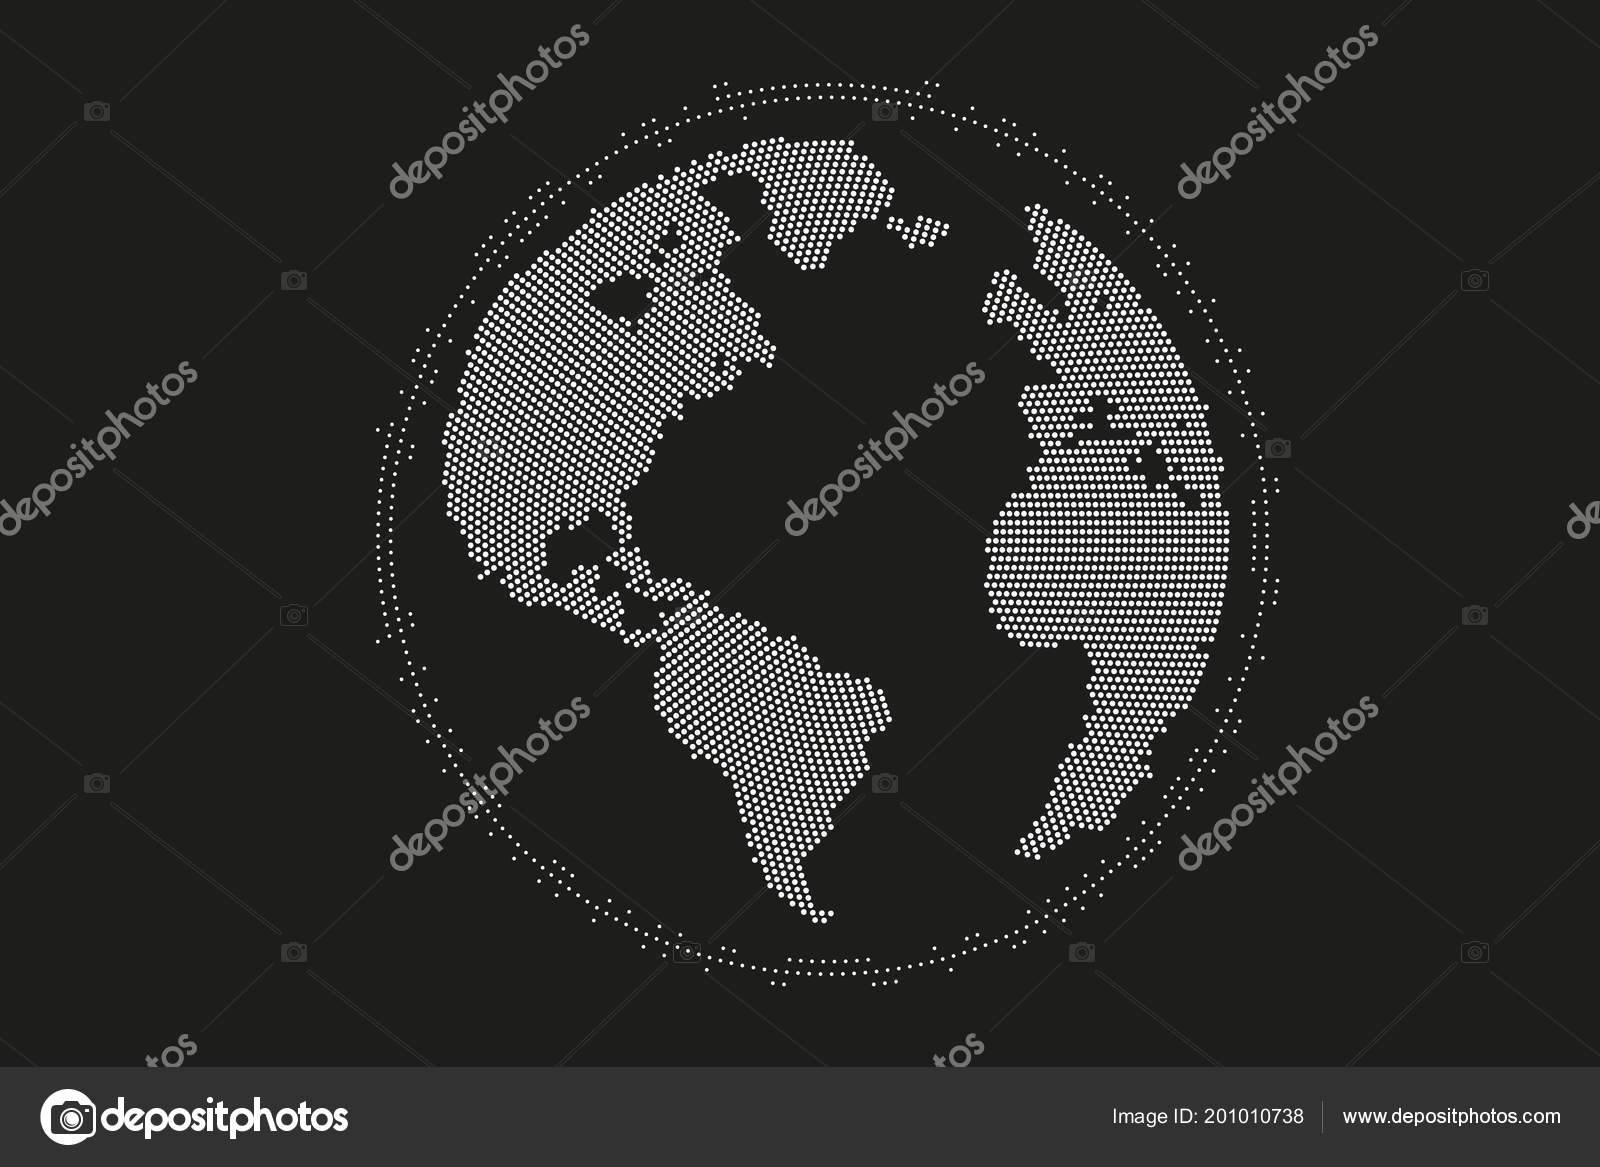 World map point, line, composition, representing the global, Global